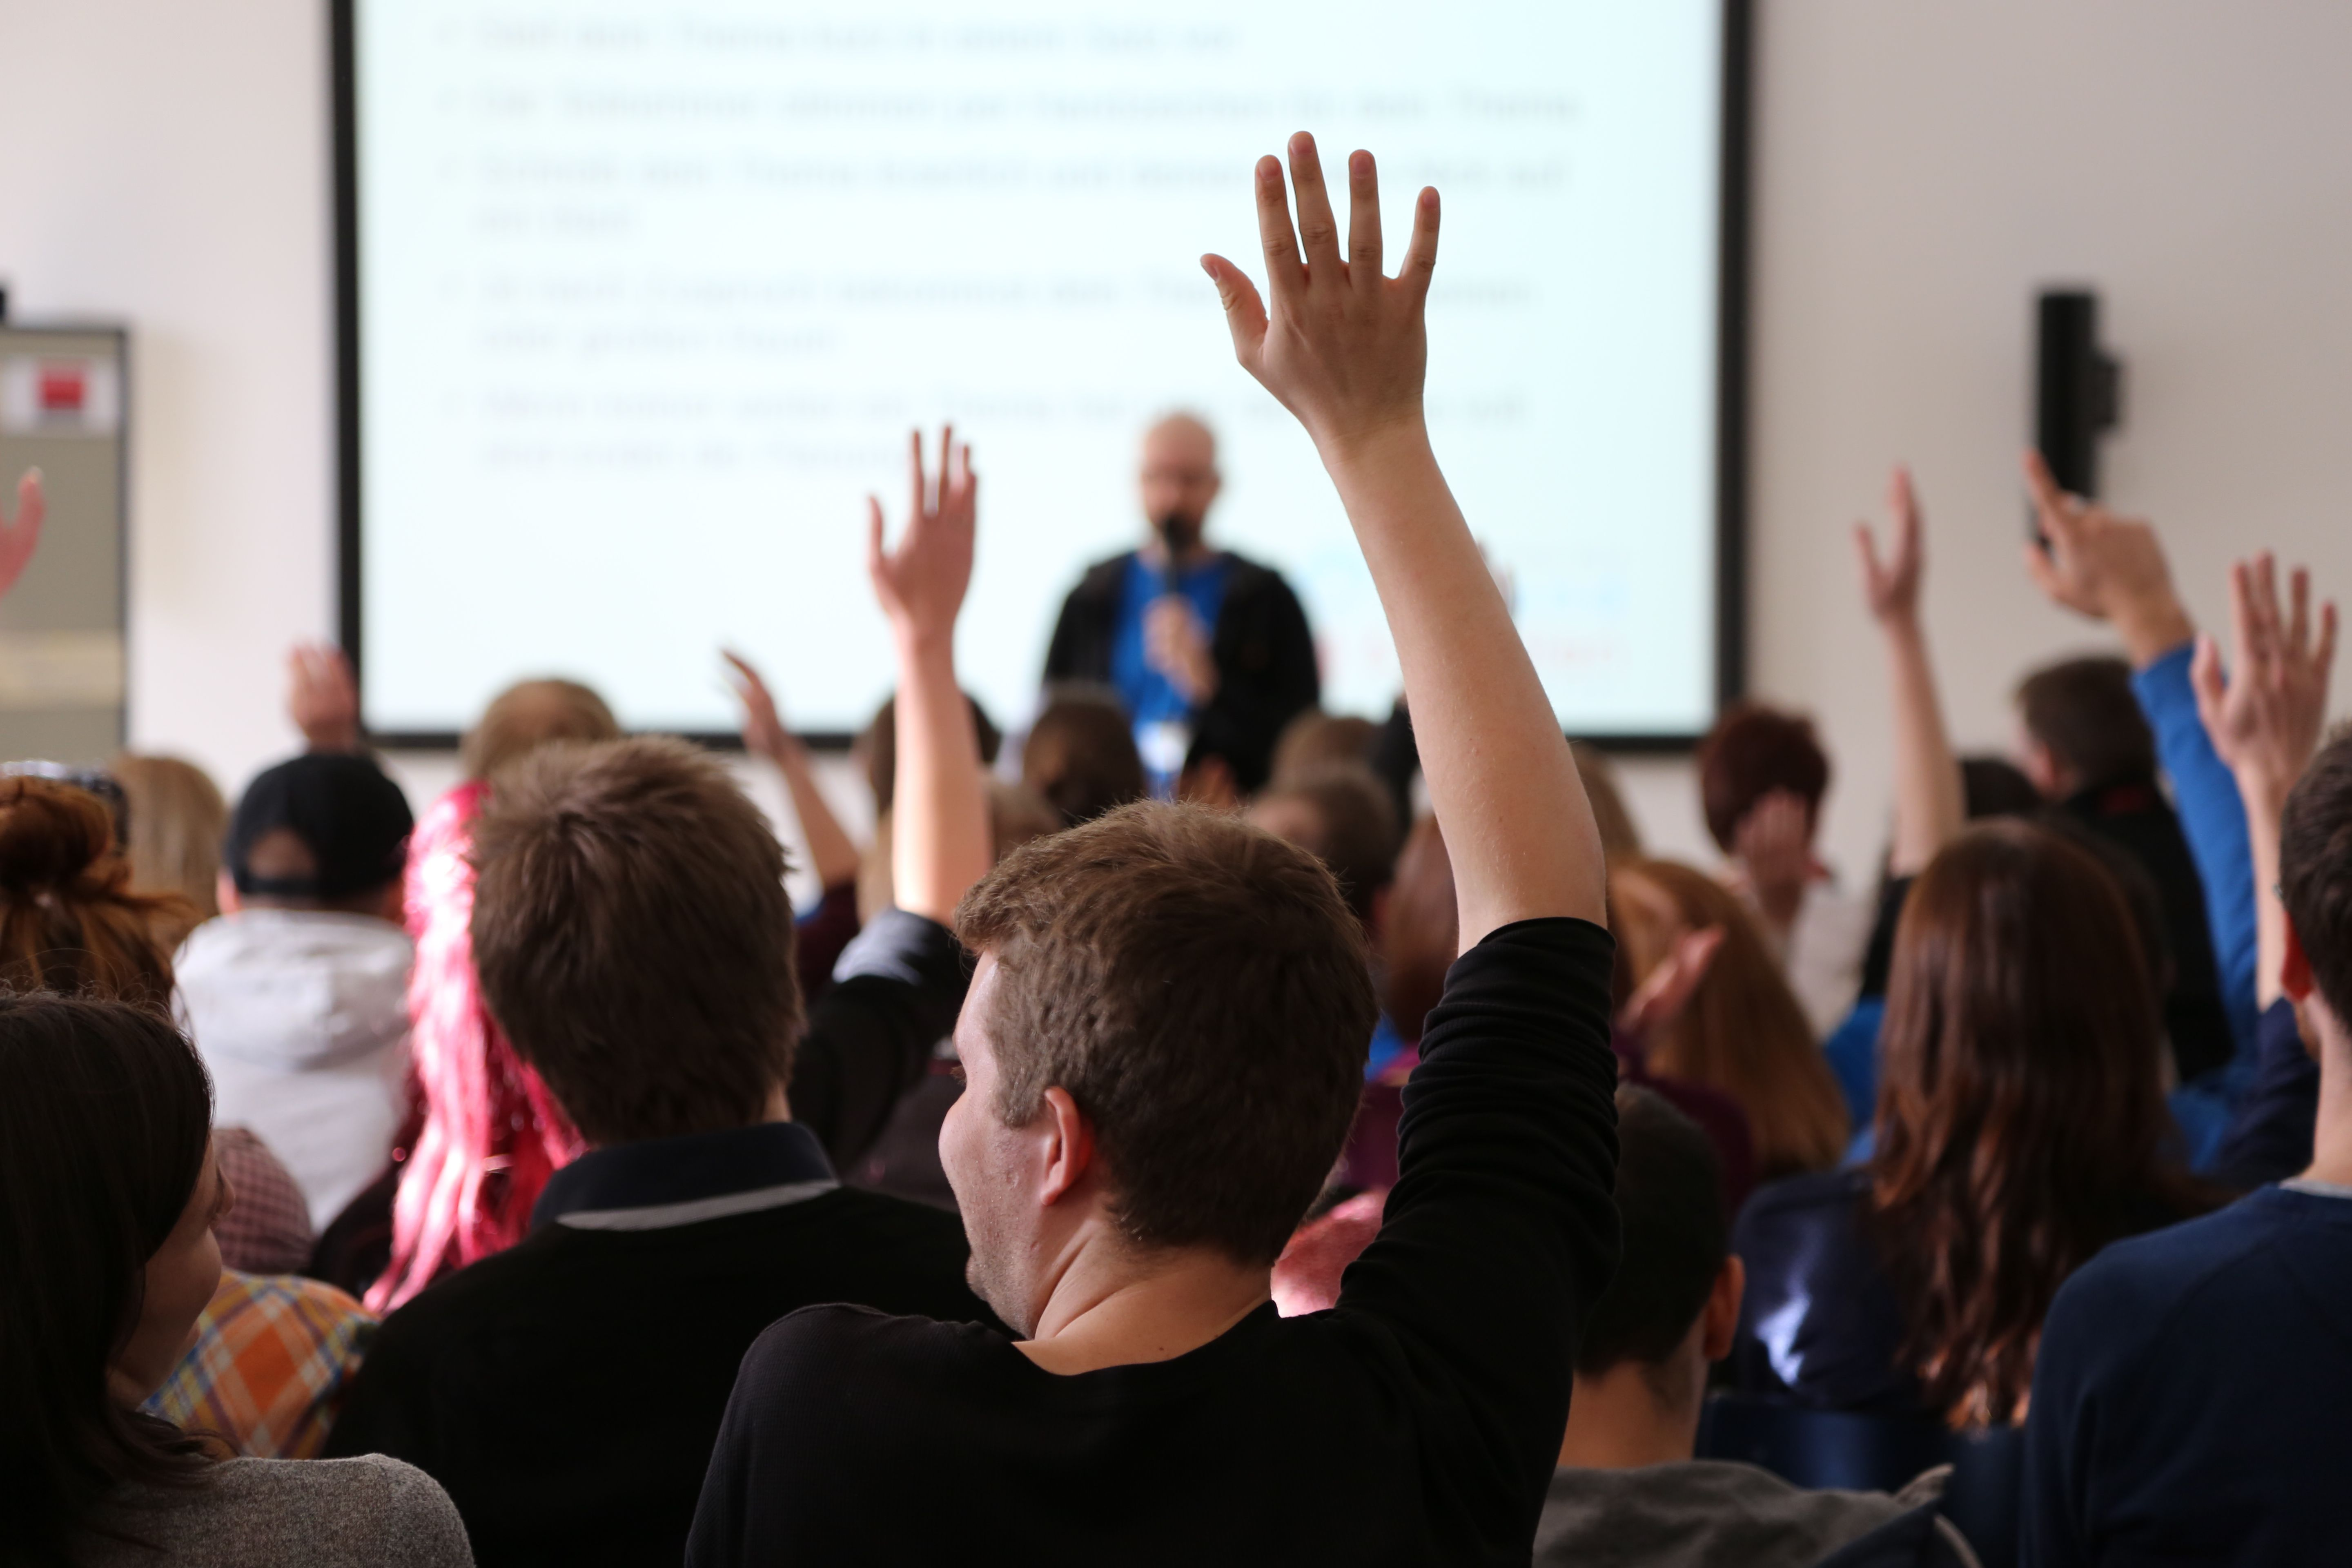 students raising their hands during a lecture